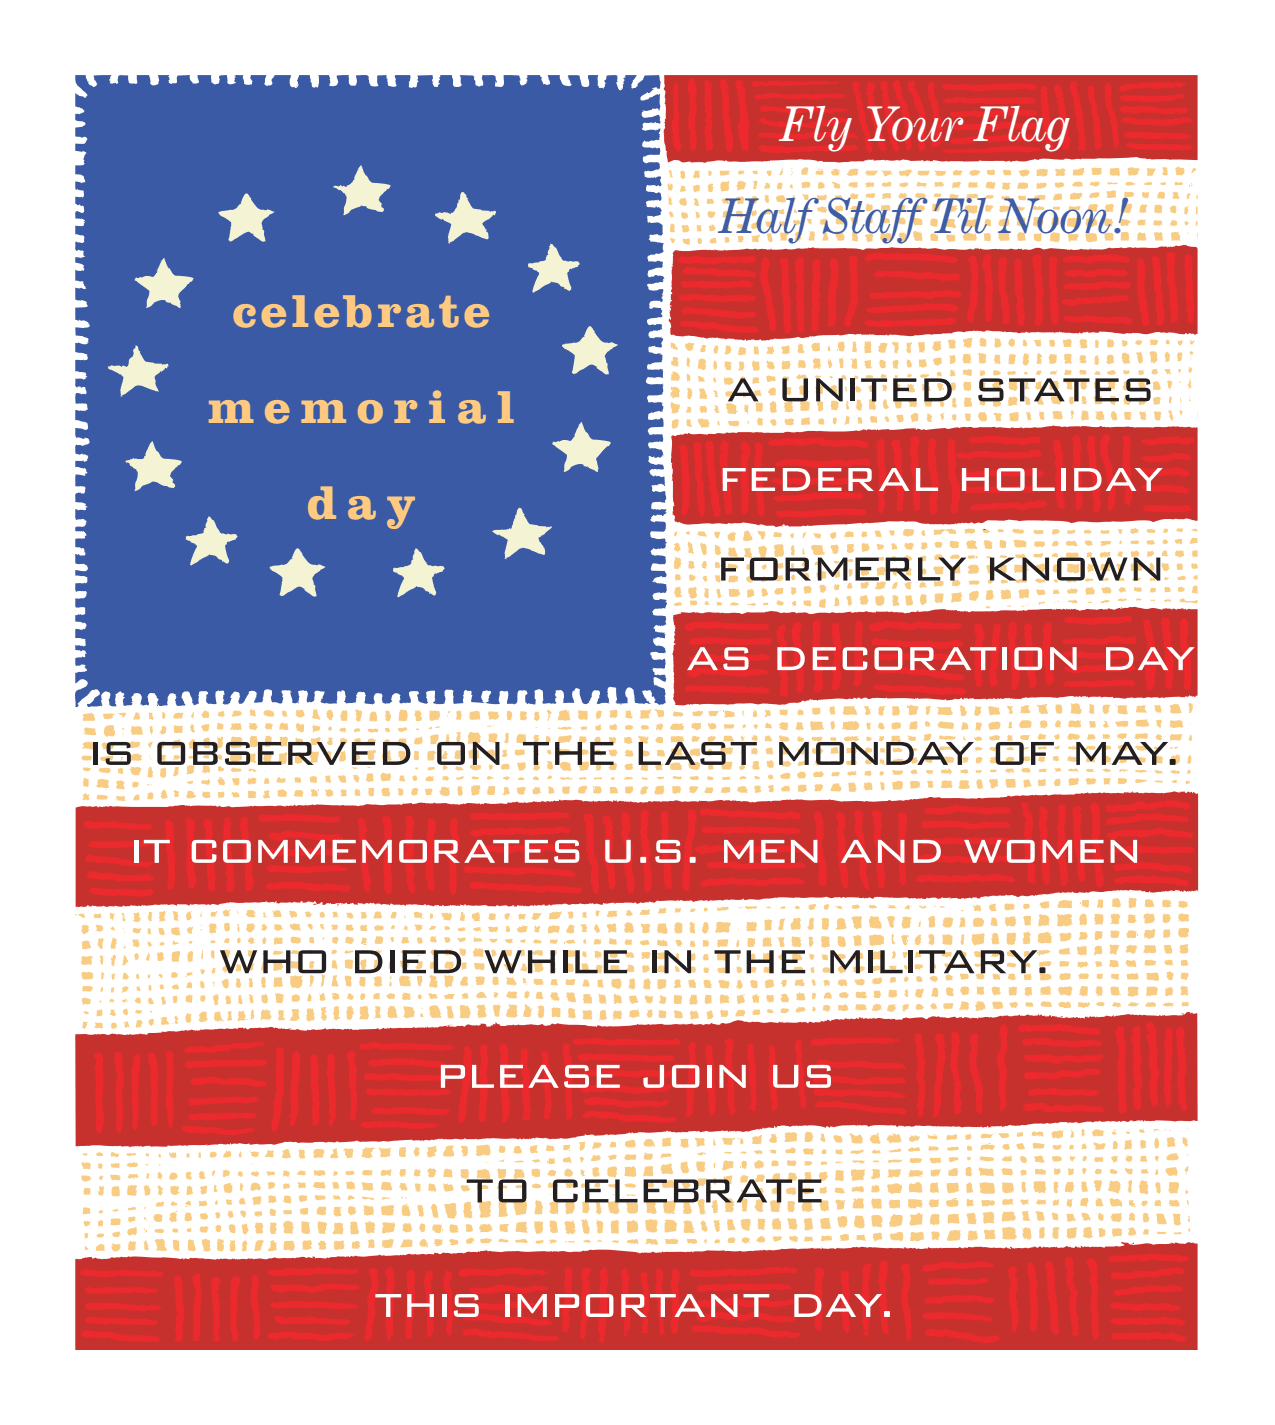 Celebrate Memorial Day - activities at Benton House of Raymore in Raymore, MO